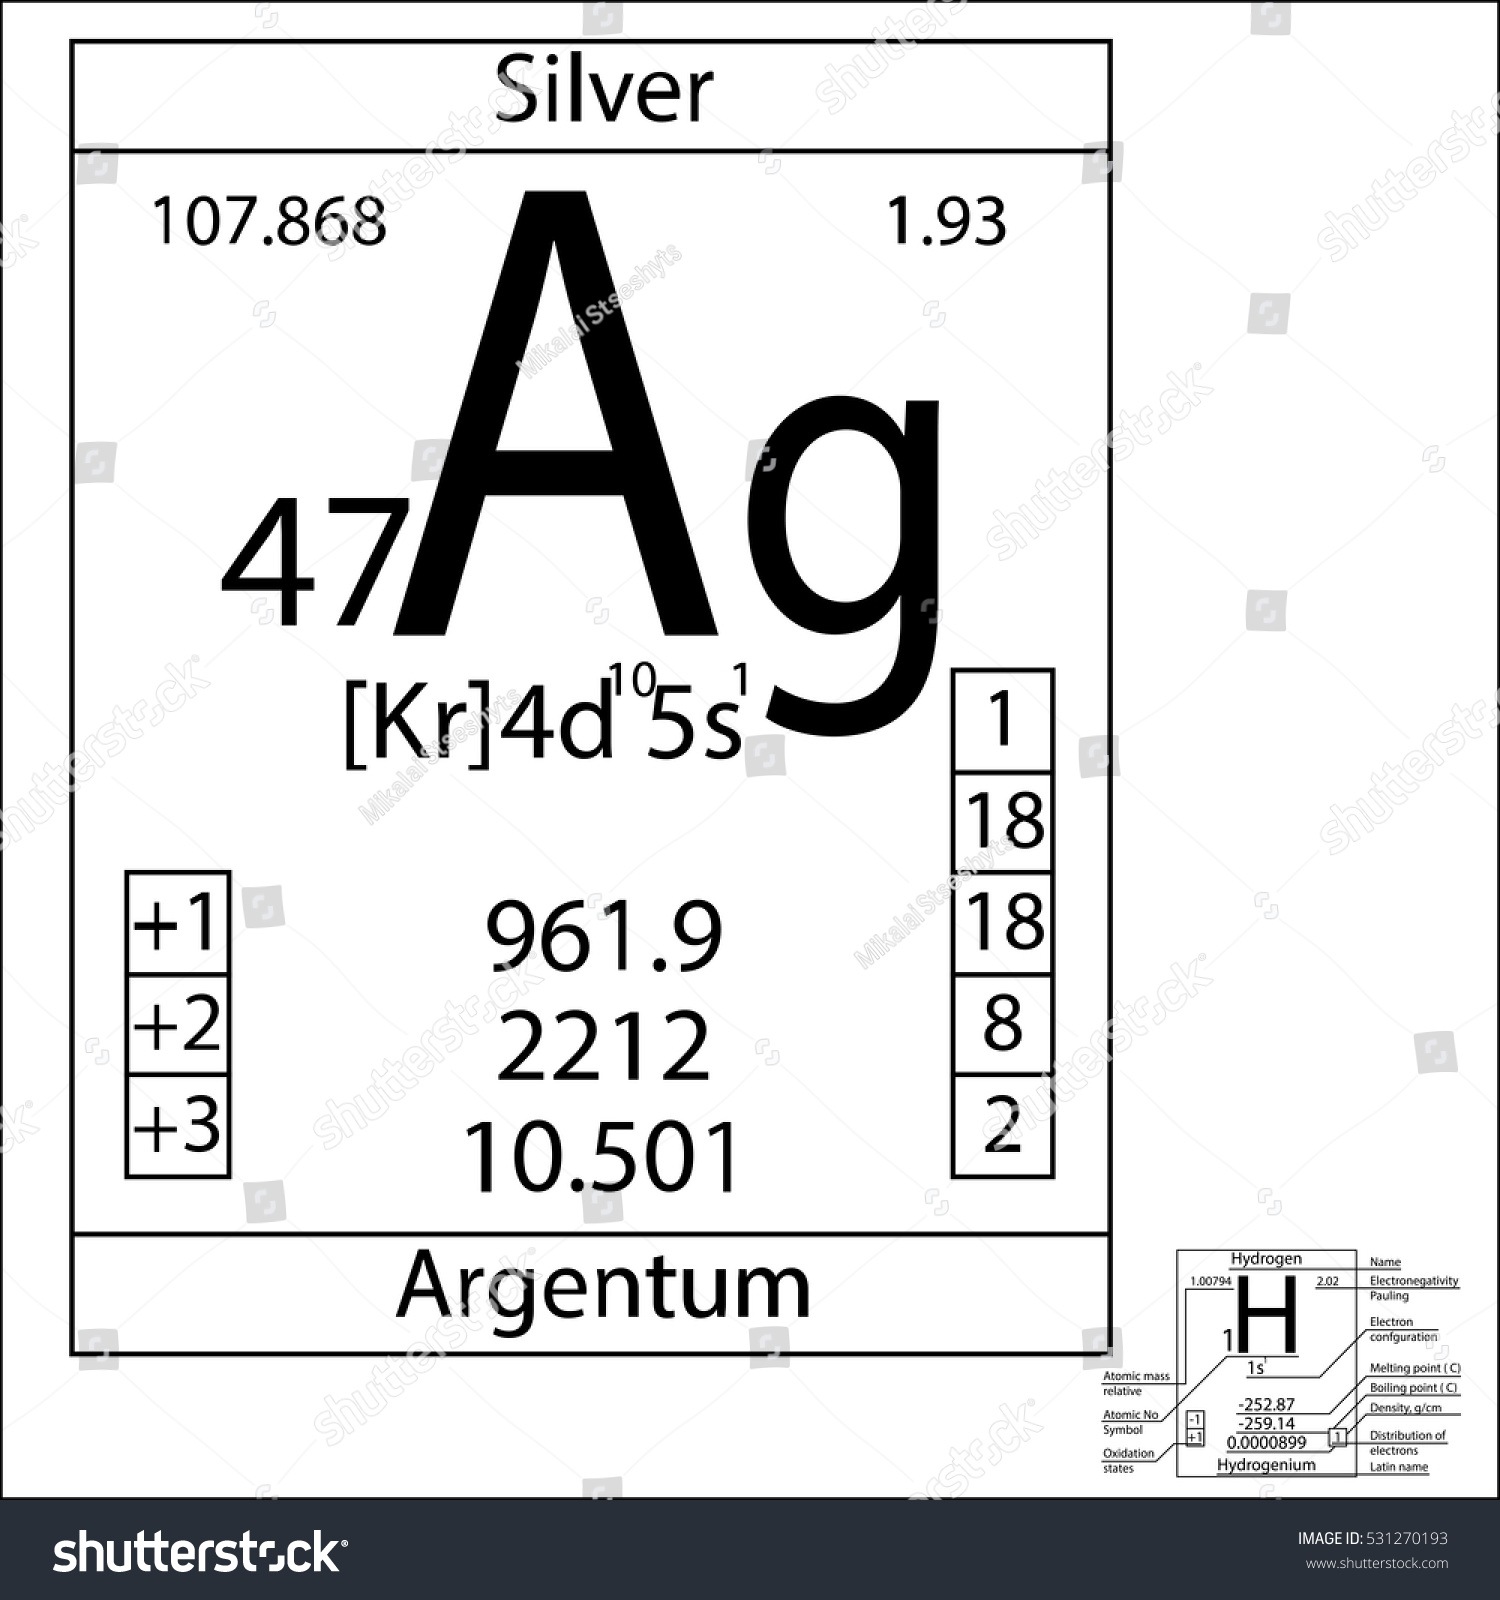 Periodic table element silver basic properties stock vector the periodic table element silver with the basic properties gamestrikefo Images